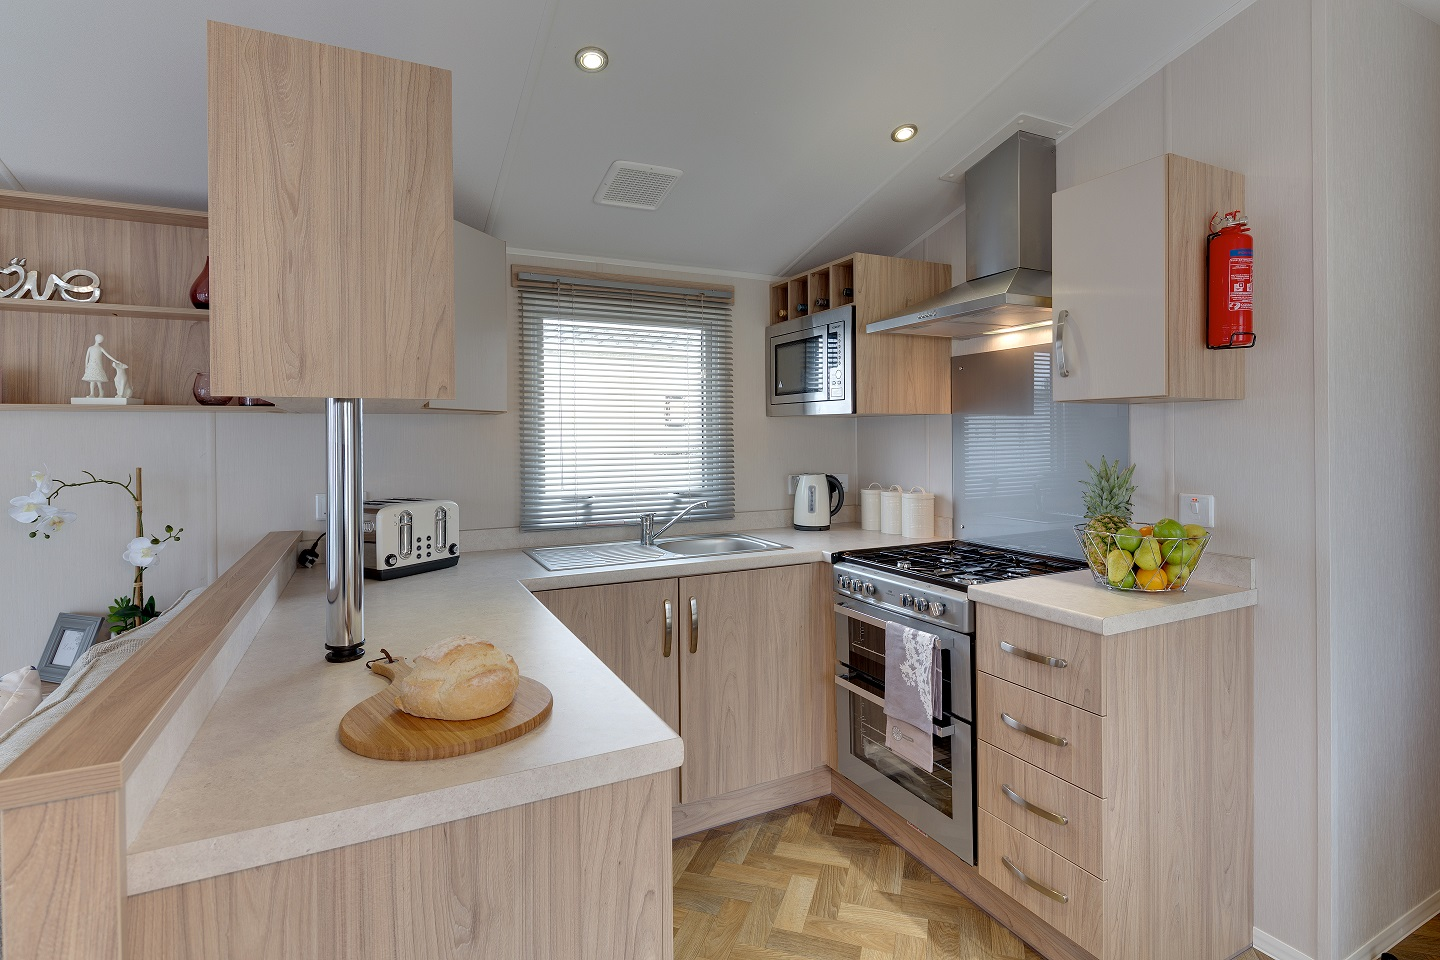 Willerby Brockenhurst: New Static Caravans and Holiday Homes for Sale, Clifton, Morpeth Image 2